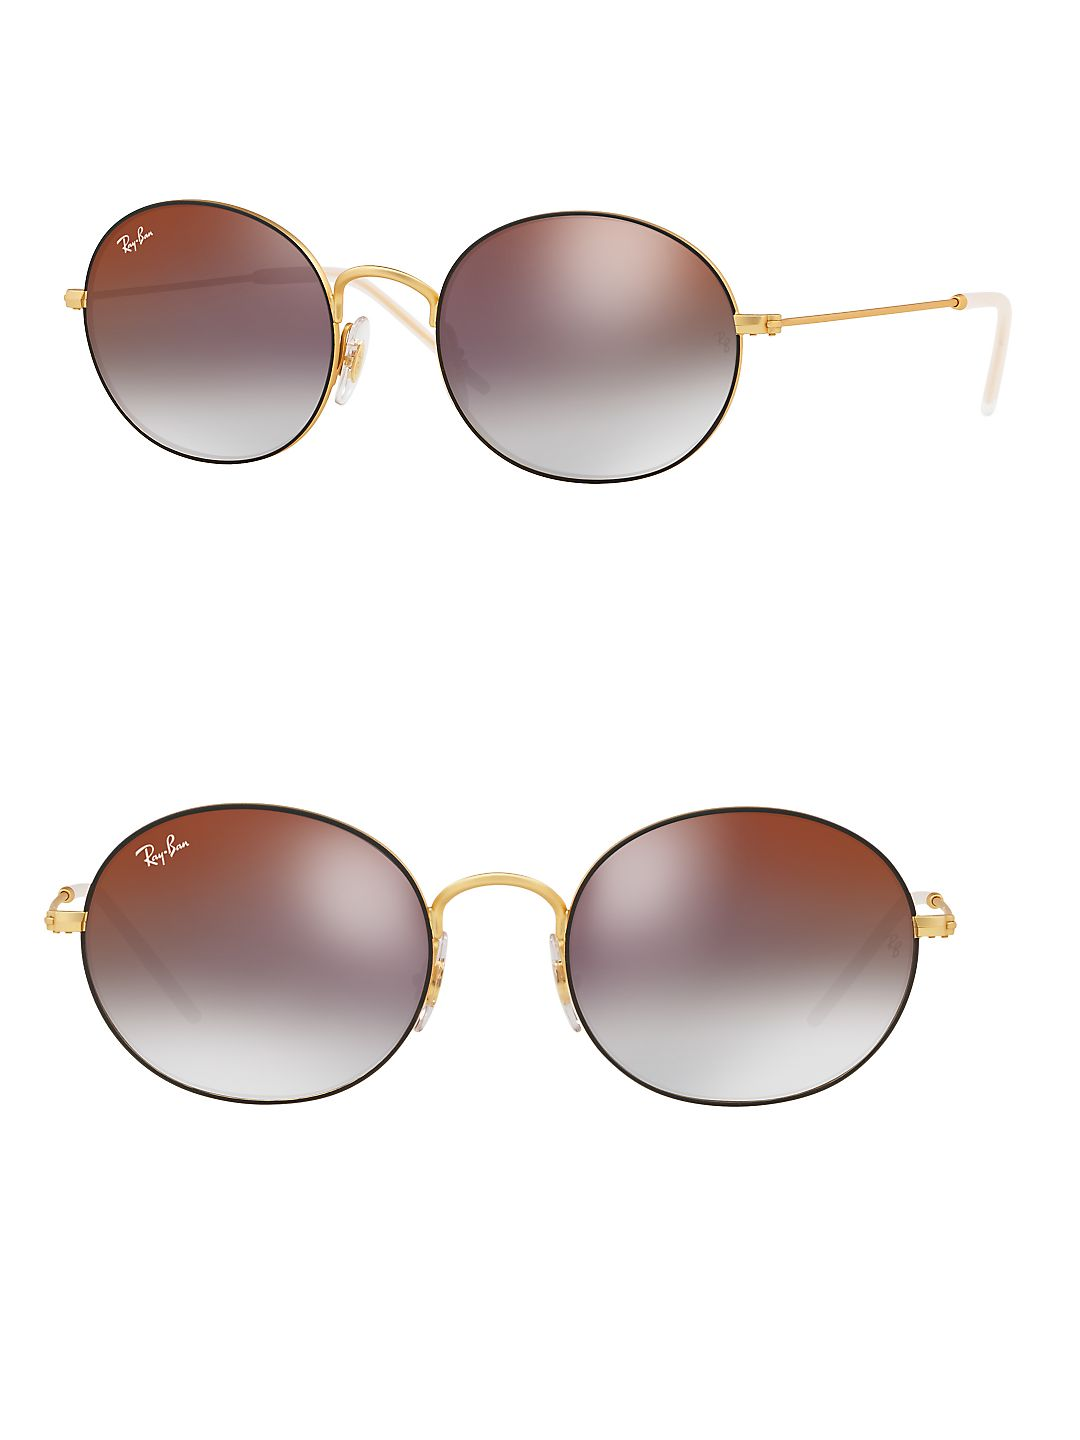 53MM Oval Sunglasses